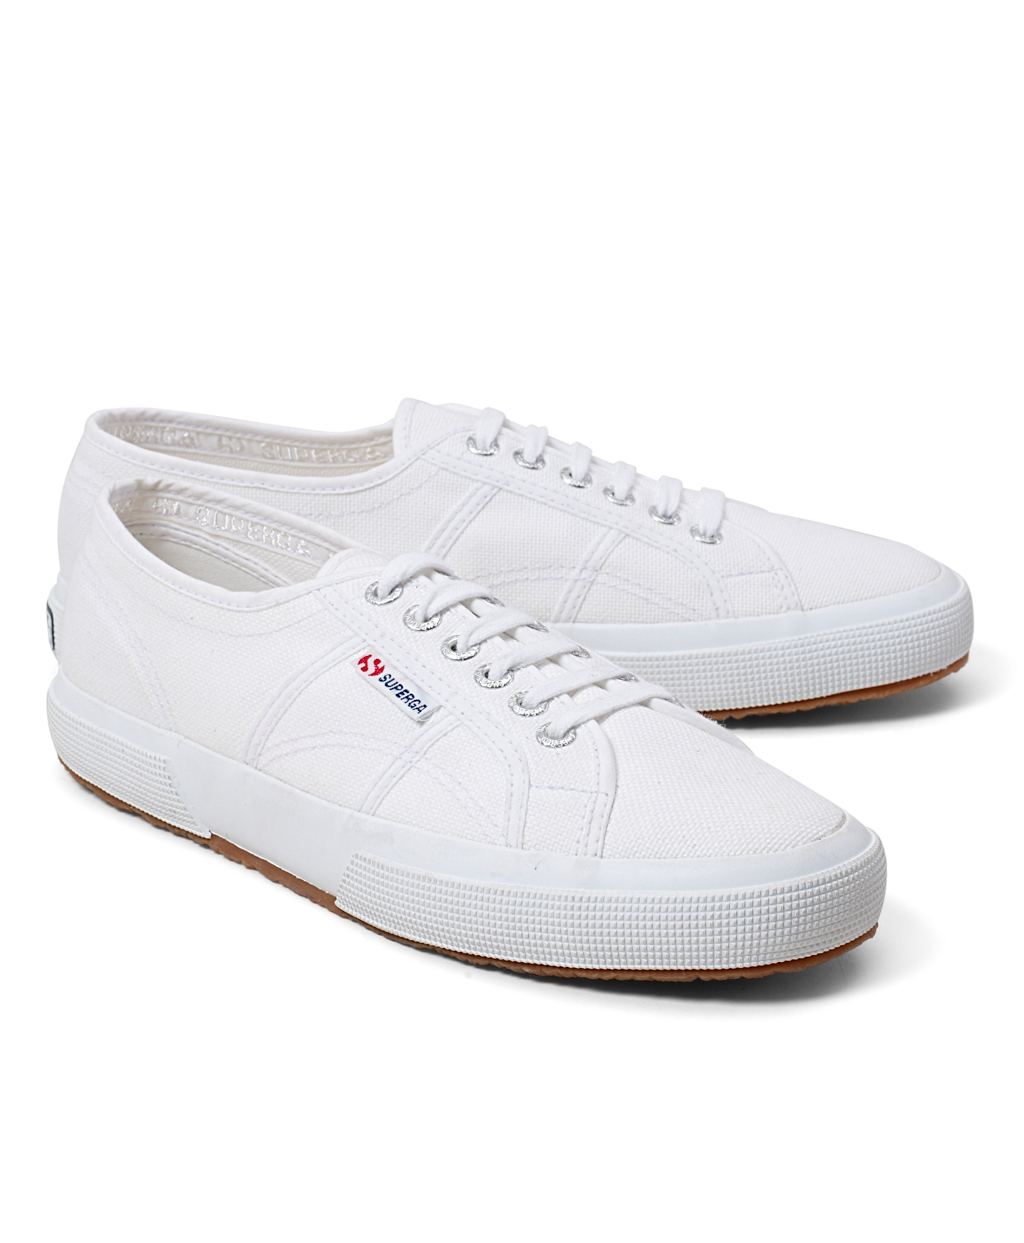 6202567501467 Lyst - Brooks Brothers Superga® Canvas Sneakers in White for Men